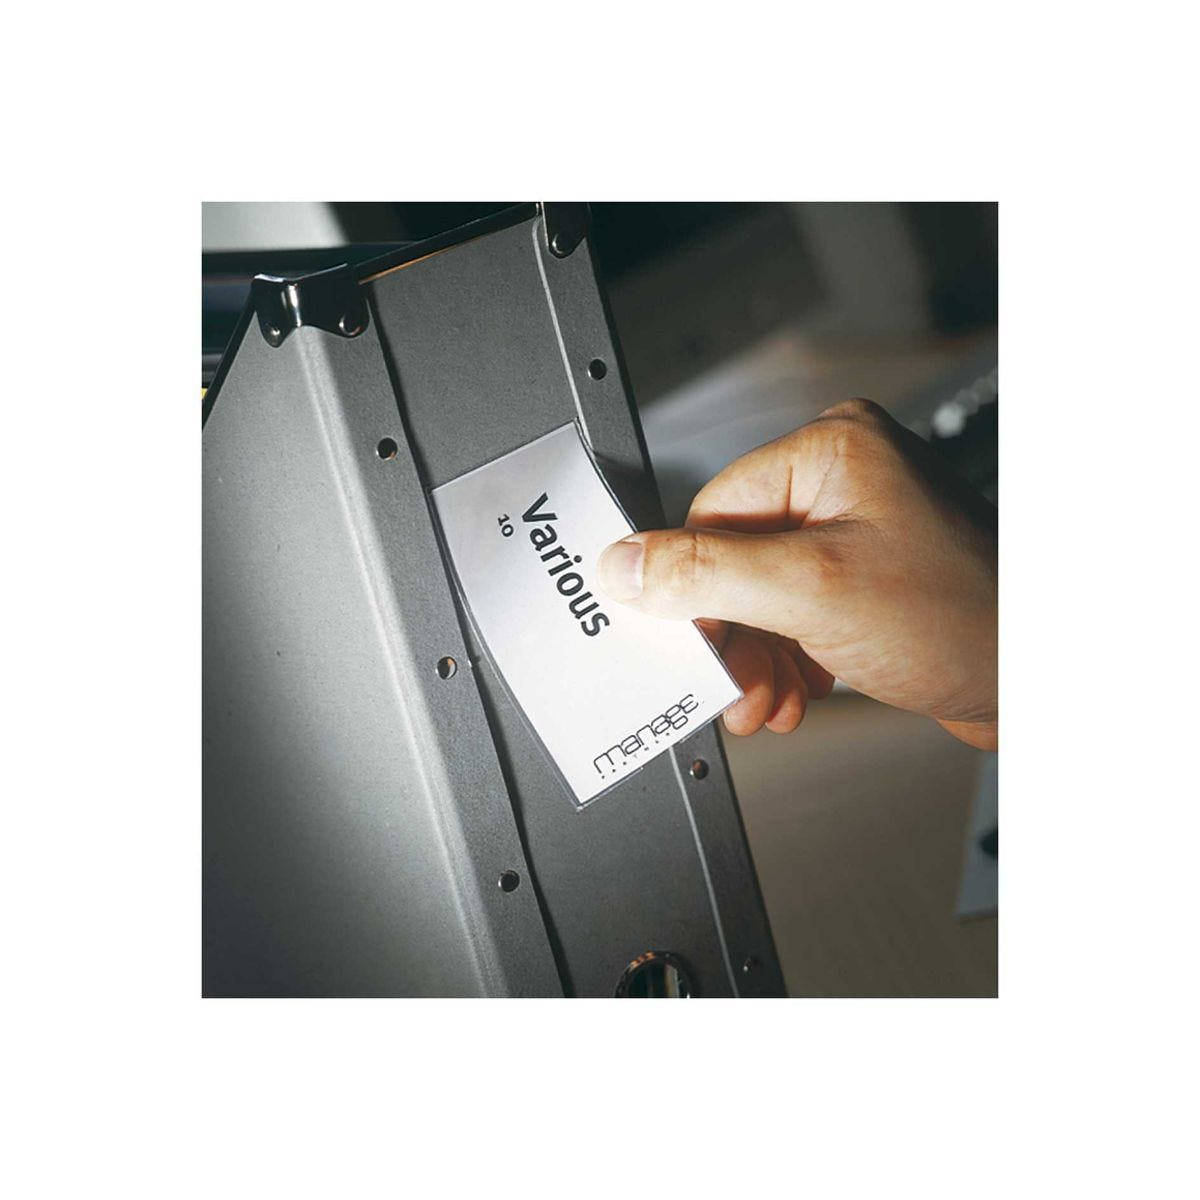 Image of 3L Self Adhesive Label Holders 55x150 Pack of 6